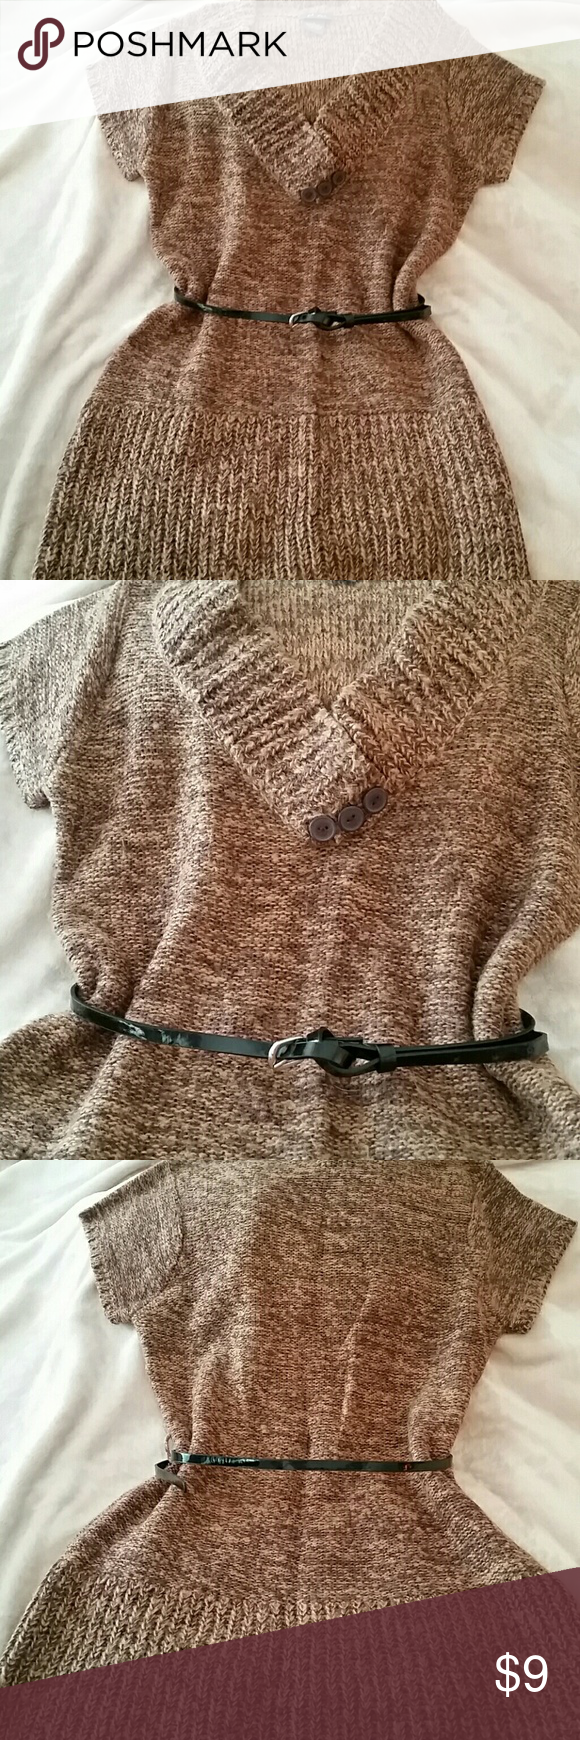 Chocolate wool sweater dress sz L with belt Dots sz L chocolate brown sweater dress, short sleeve with belt. SO CUTE and so cozy!!! This was my go-to last fall. I paired this with black leggings and two toned riding boots. Adorable!! Excellent condition. Dots Sweaters V-Necks